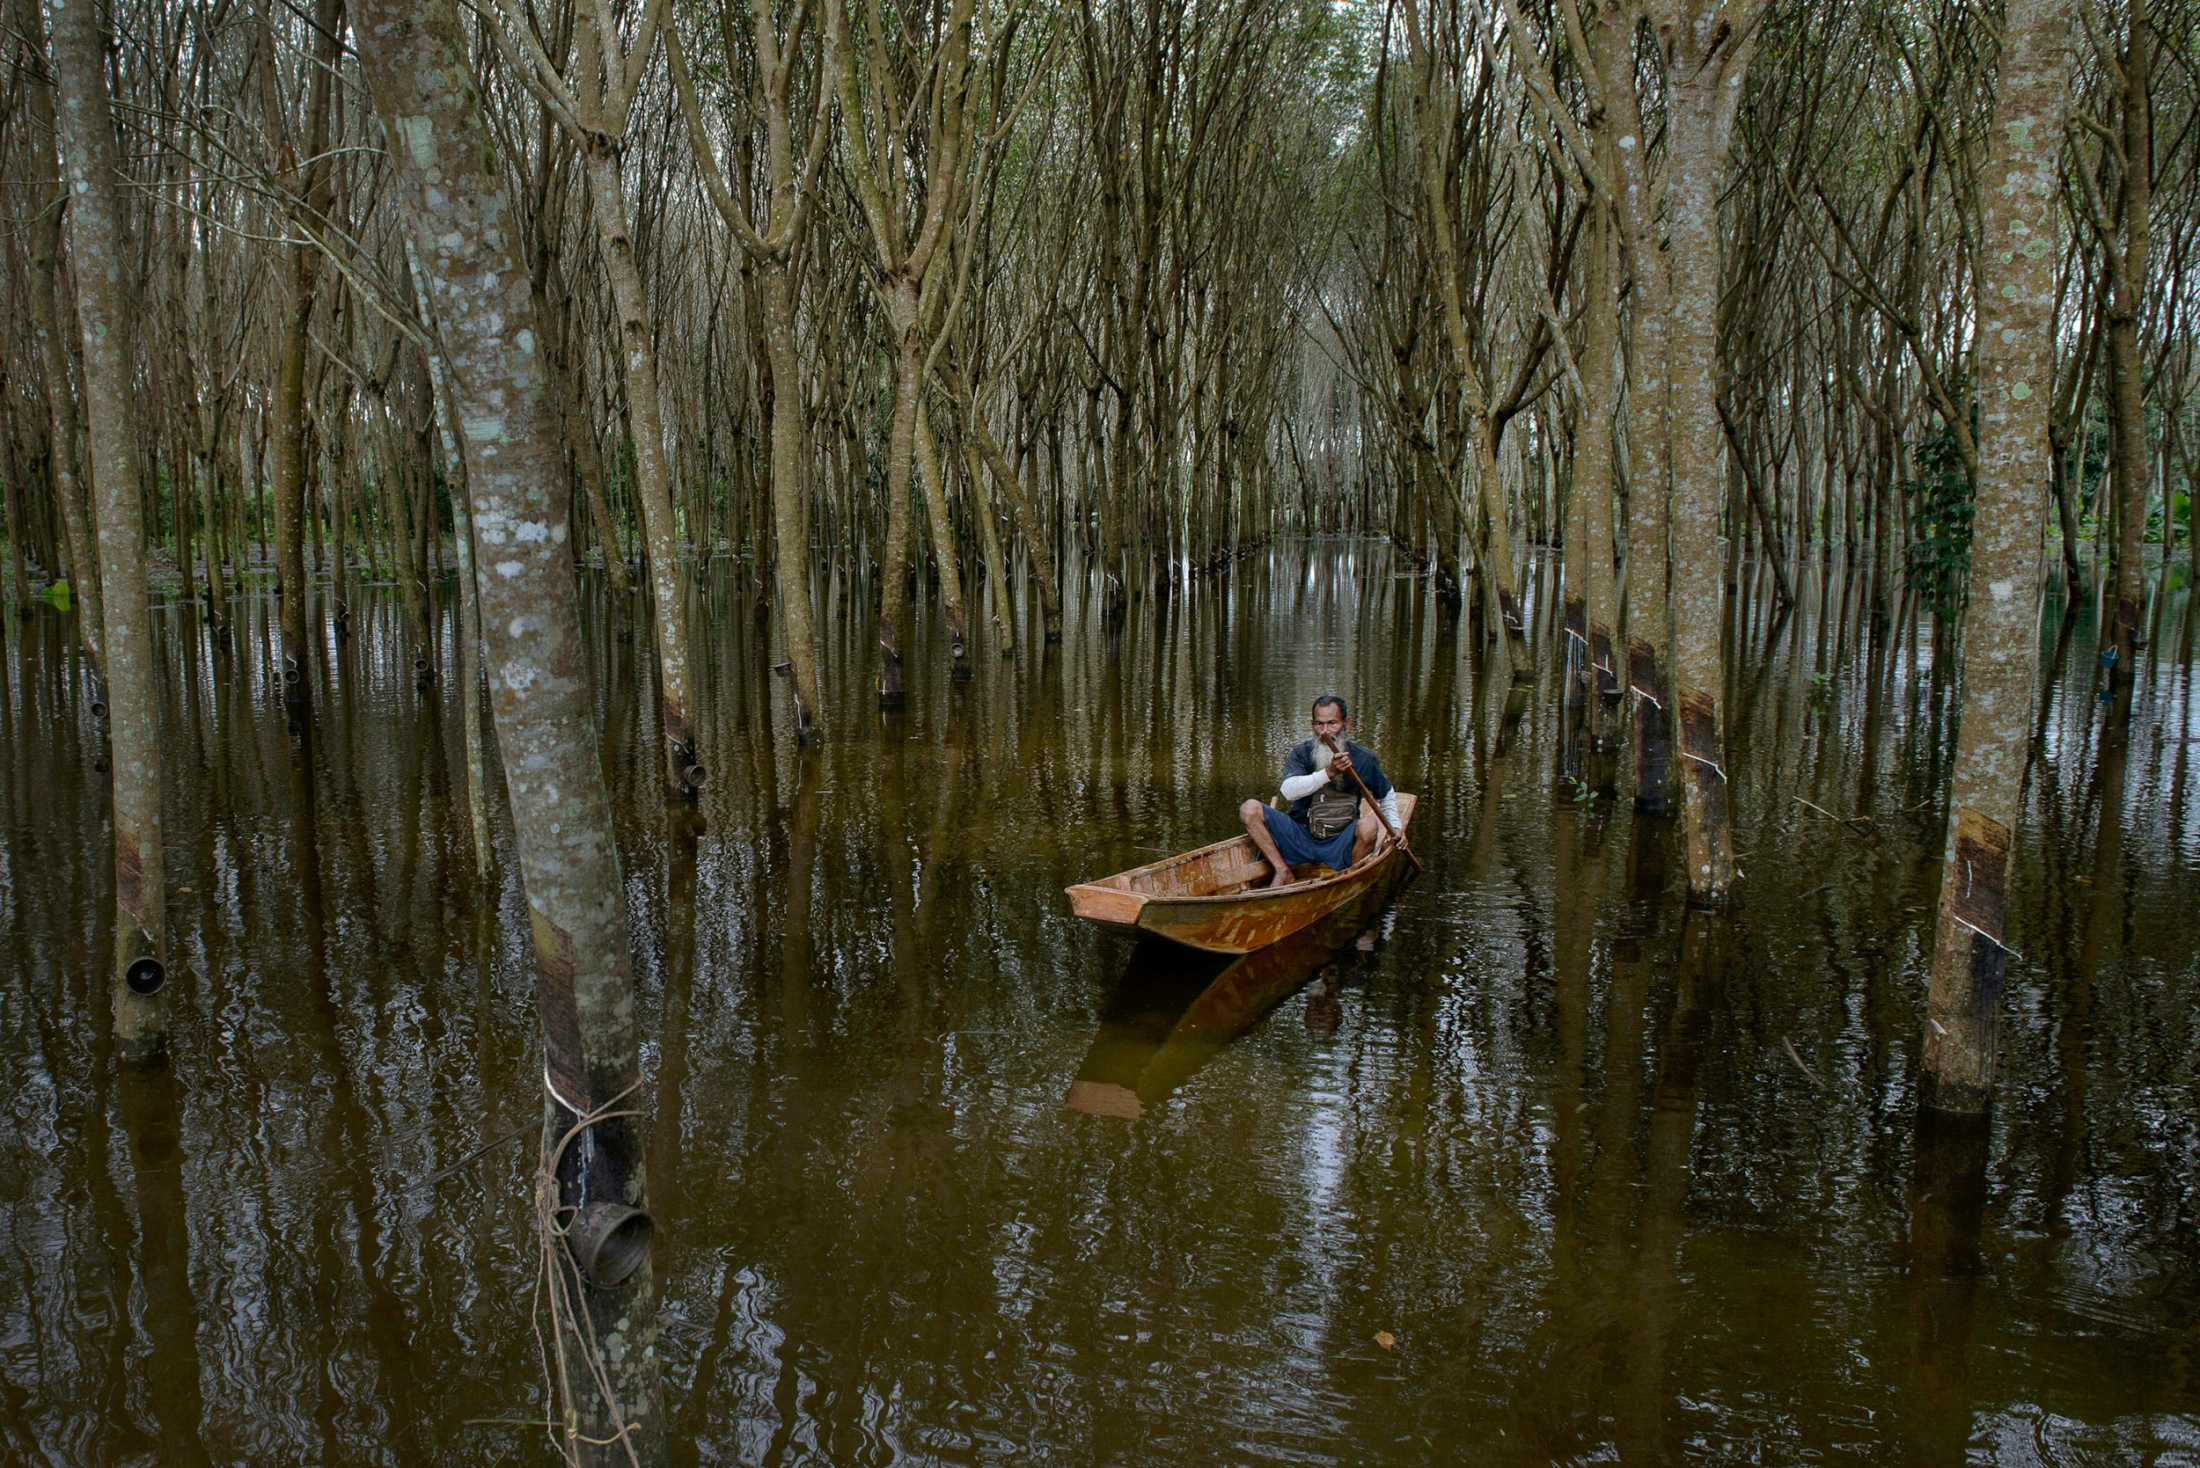 Unseasonably heavy rainfall in Southern Thailand causing widespread flooding, a farmer paddles his way through rubber tree plantations, the economic plant which is the main income to farmers in Southern Thailand.a January 17, 2017-Phunphin, Surat Thani, Thailand.